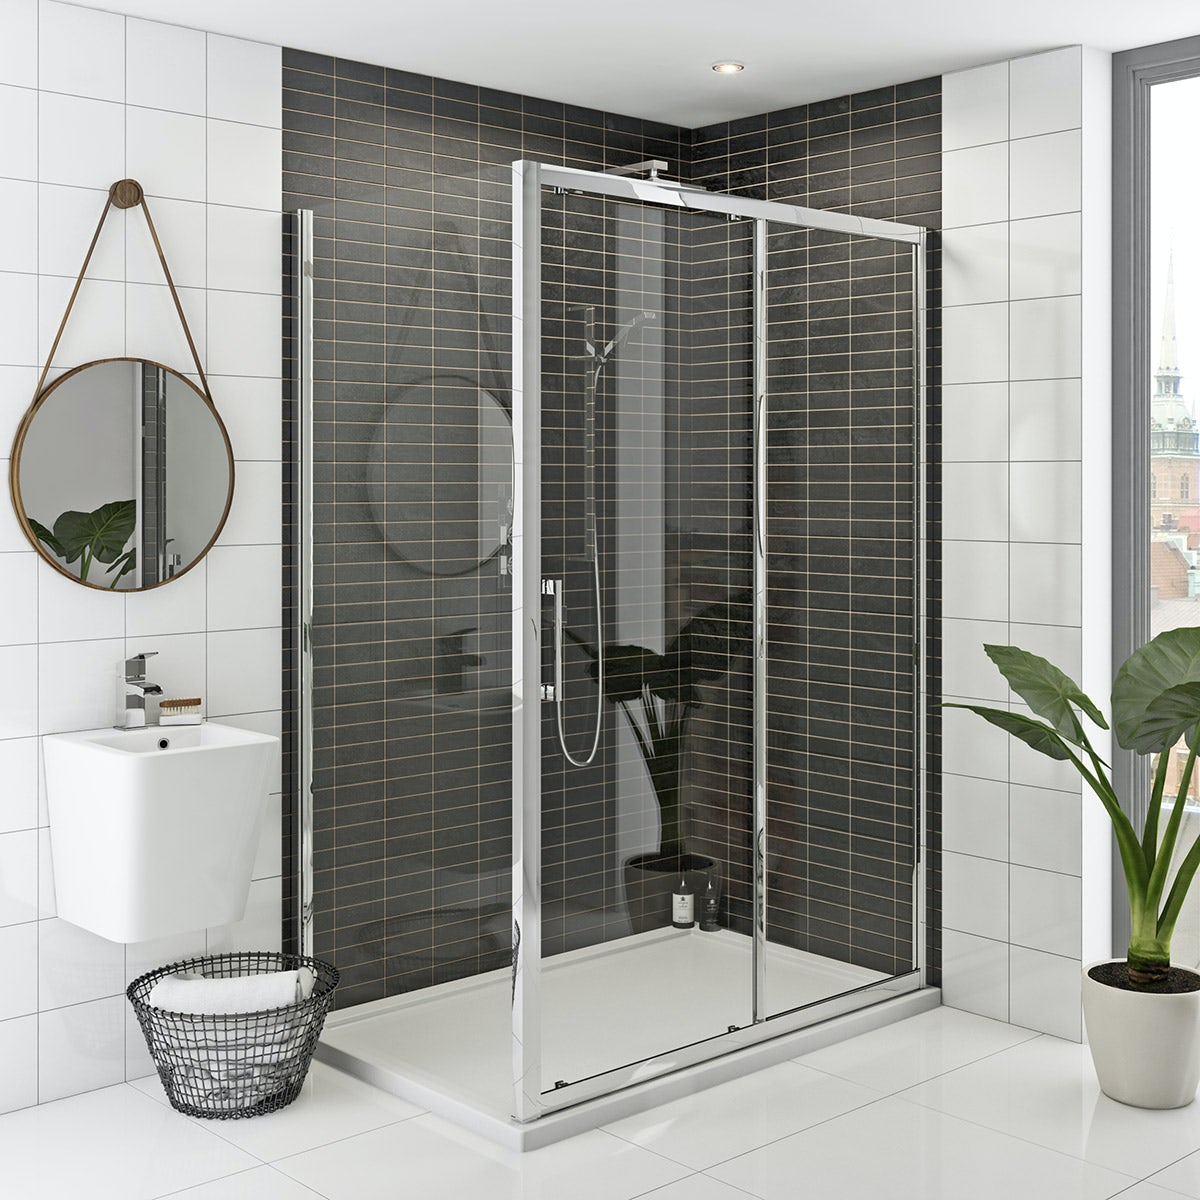 Mode Rand premium 8mm easy clean shower enclosure 1000 x 700 offer pack